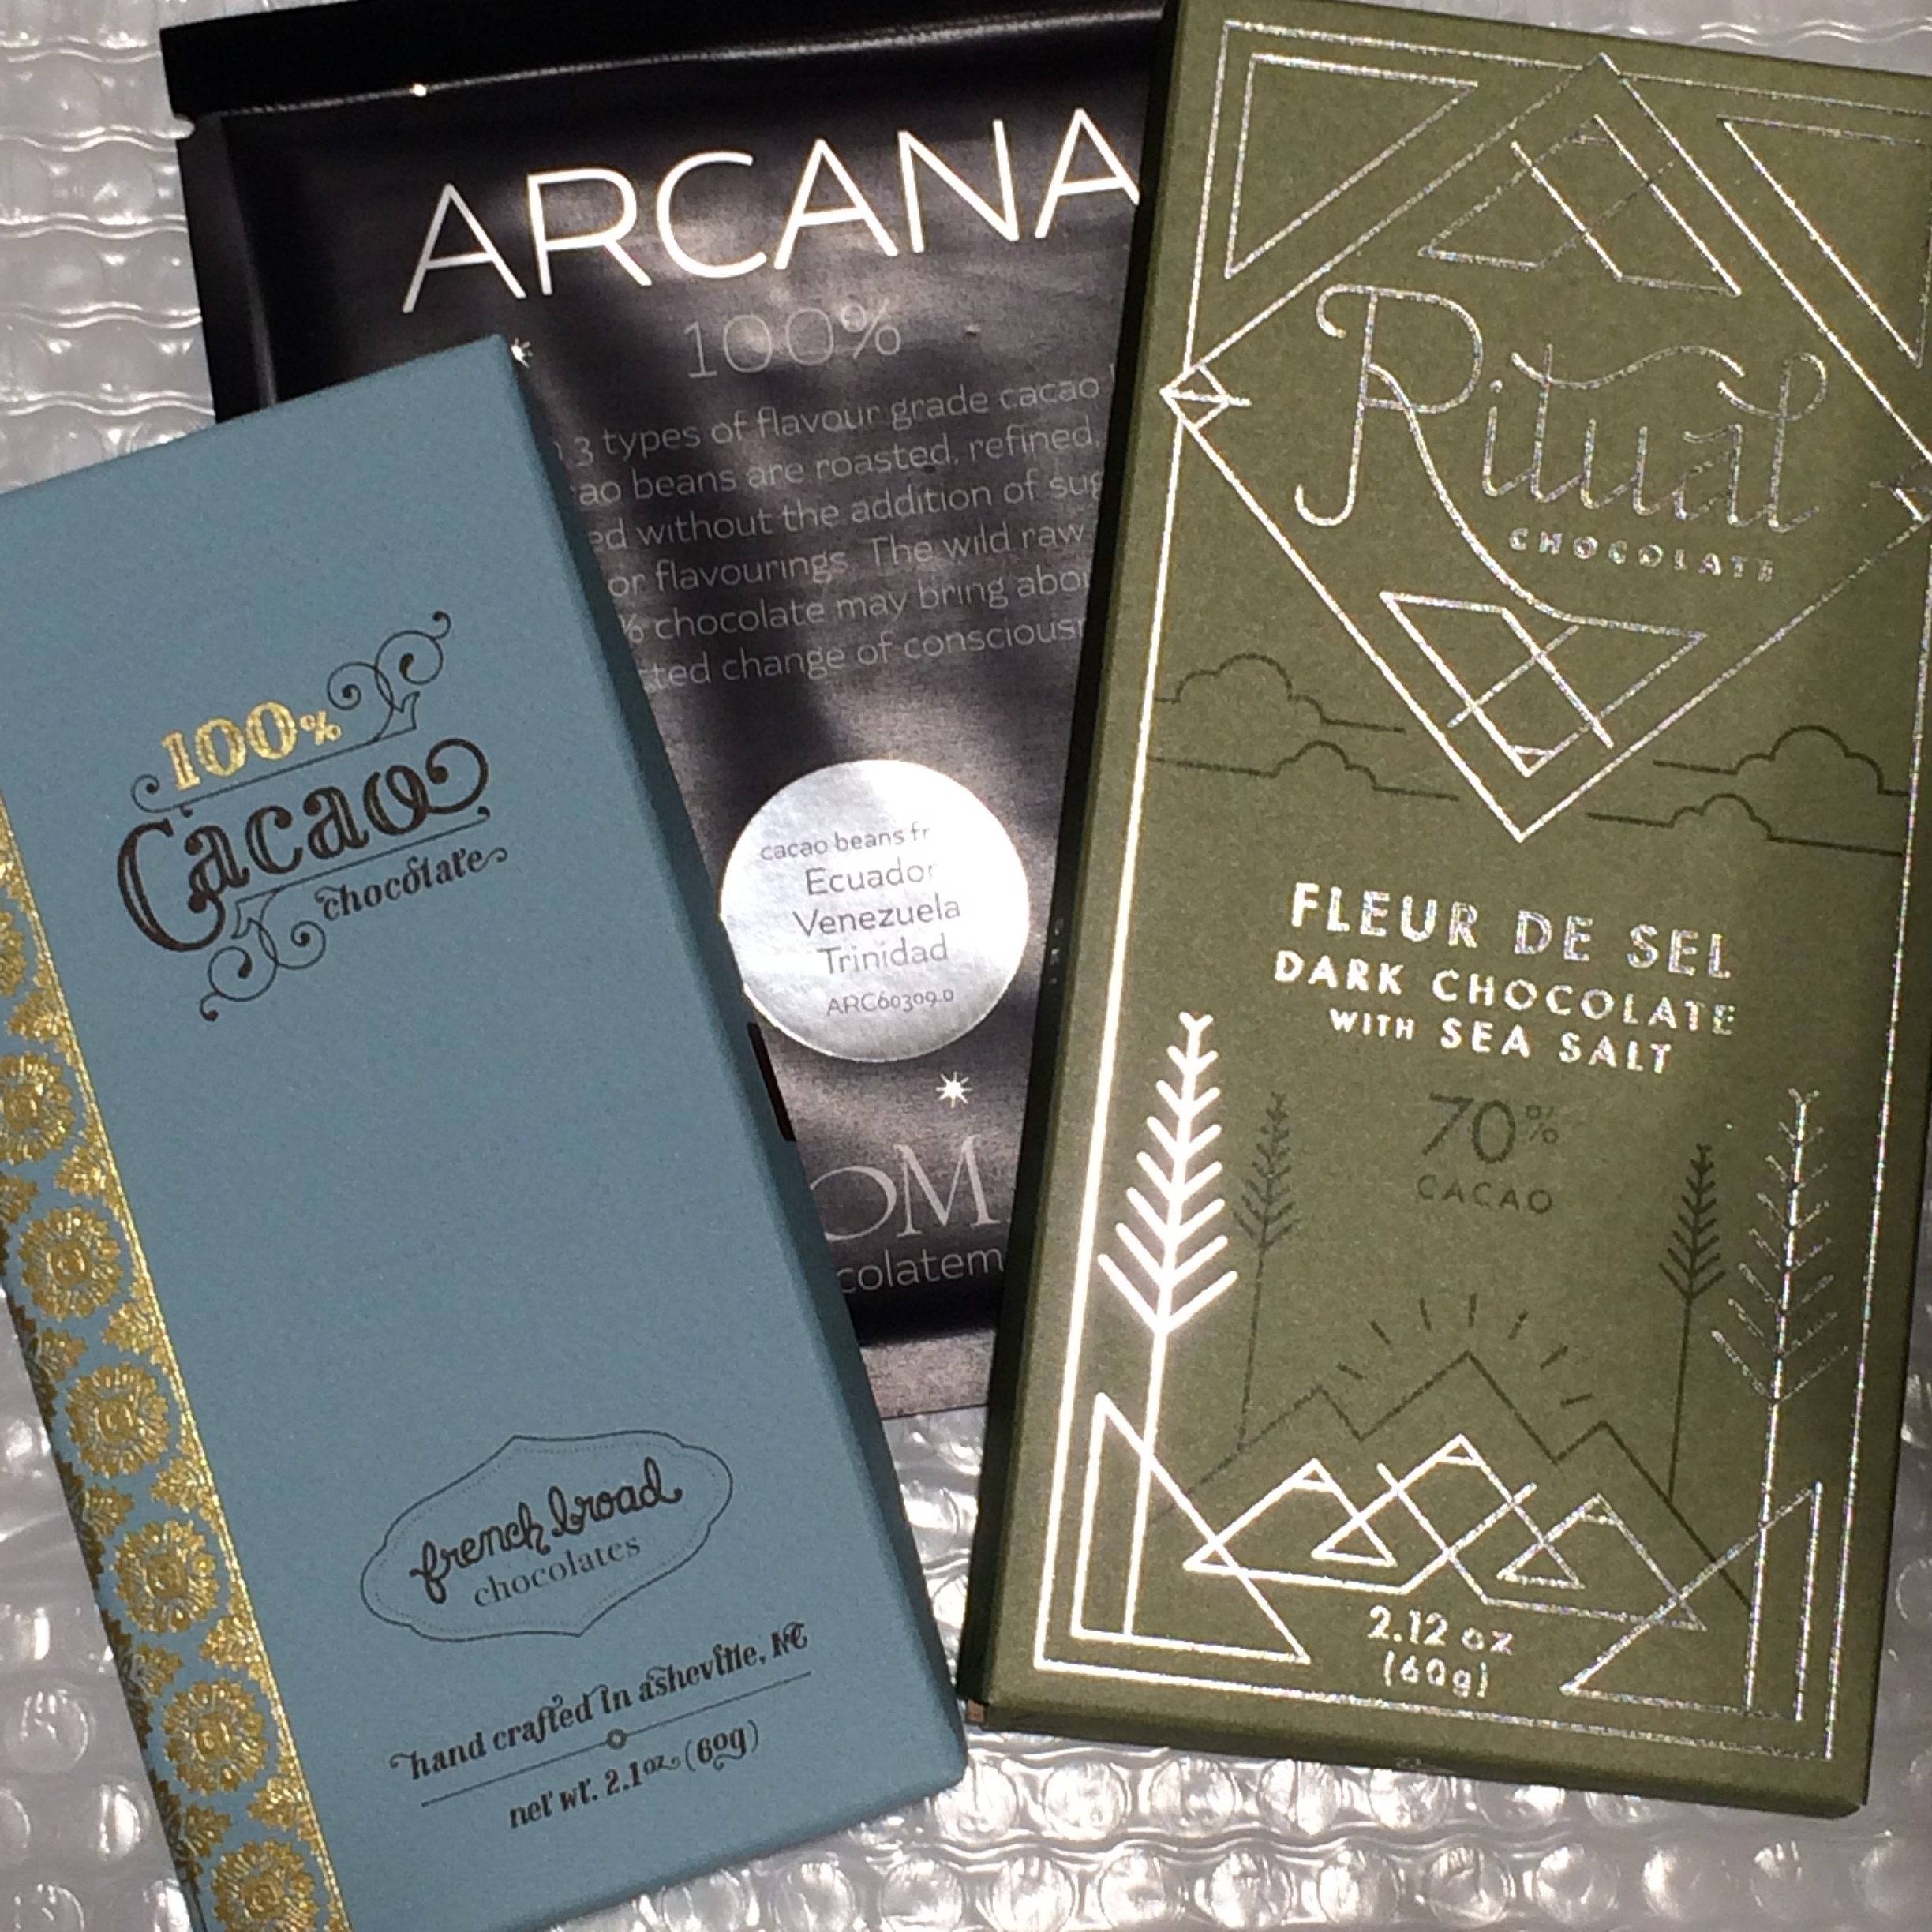 Three House Blends that we stock: French Broad and Soma's 100% cacao bars, and Ritual's Mid-Mountain Blend with Fleur de Sel.